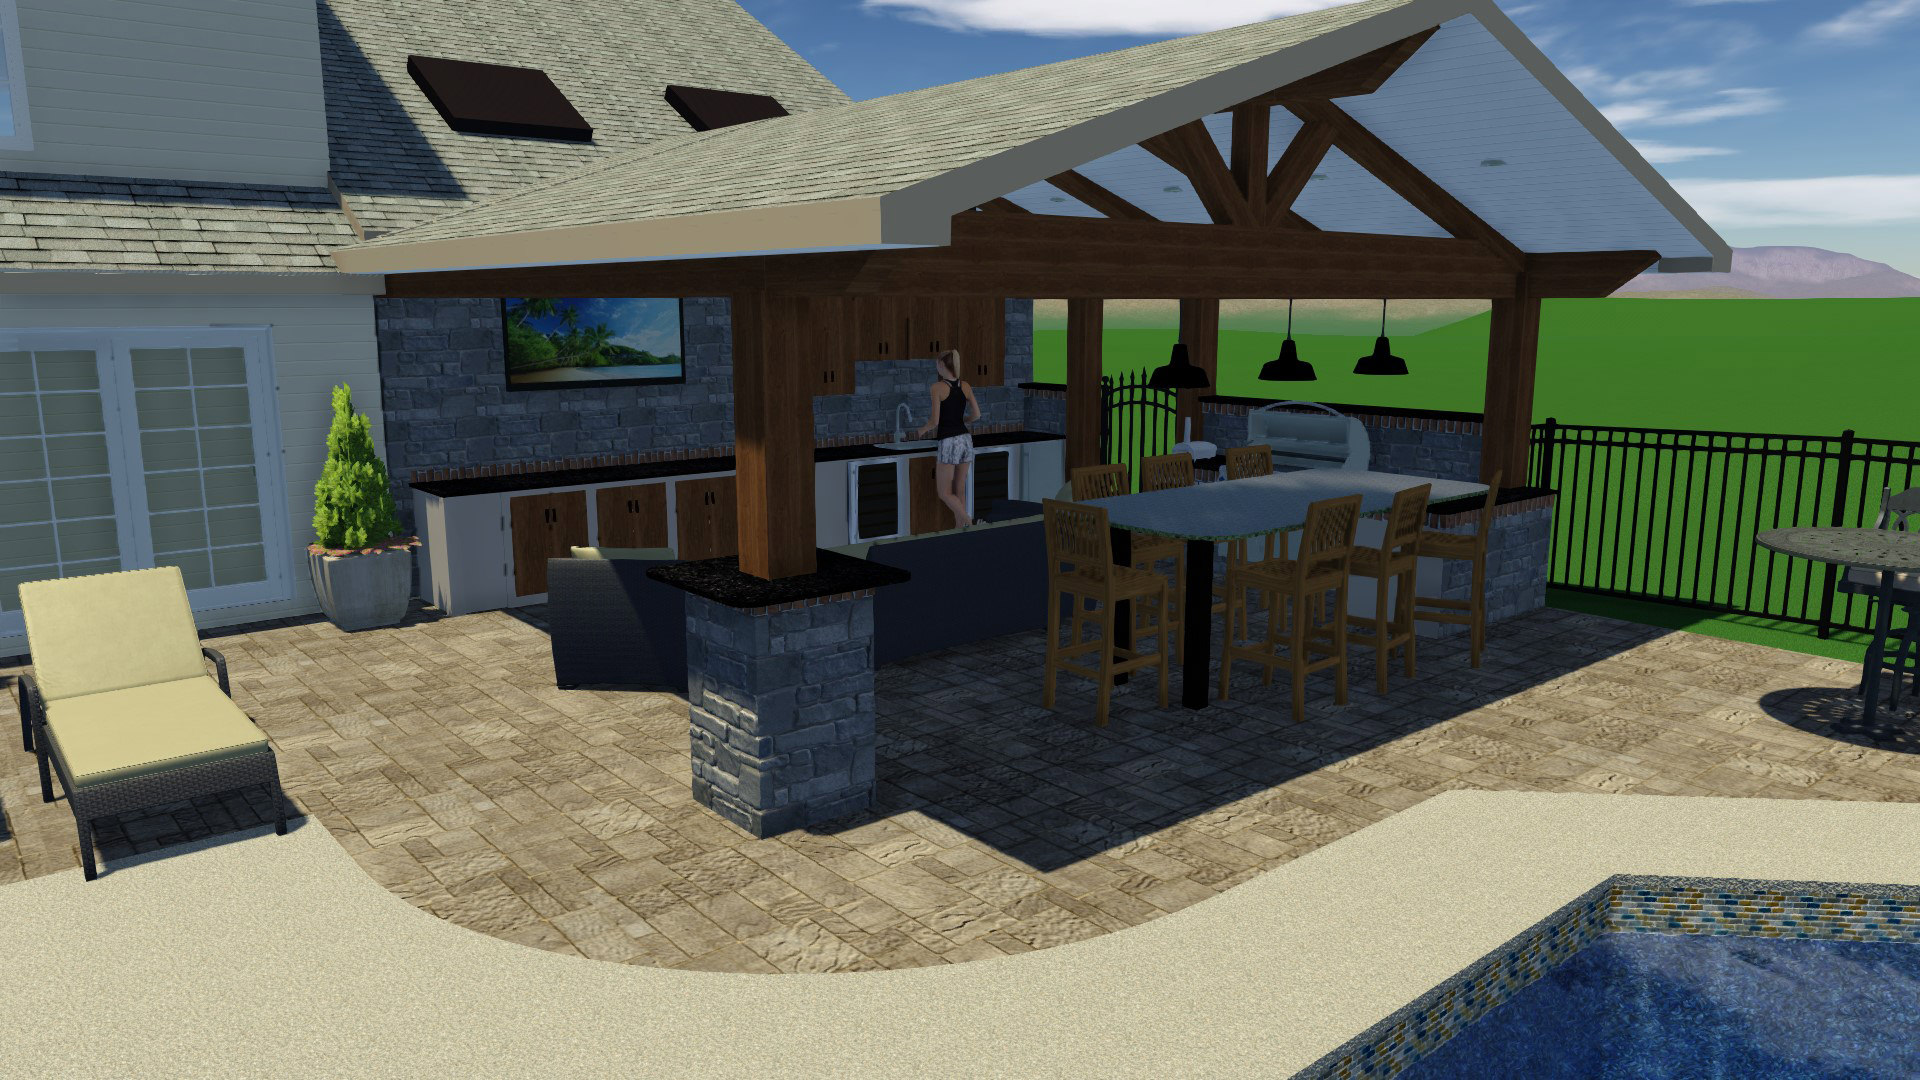 This new attached roof created an extended and protected living space to house areas for cooking, dining and lounging!